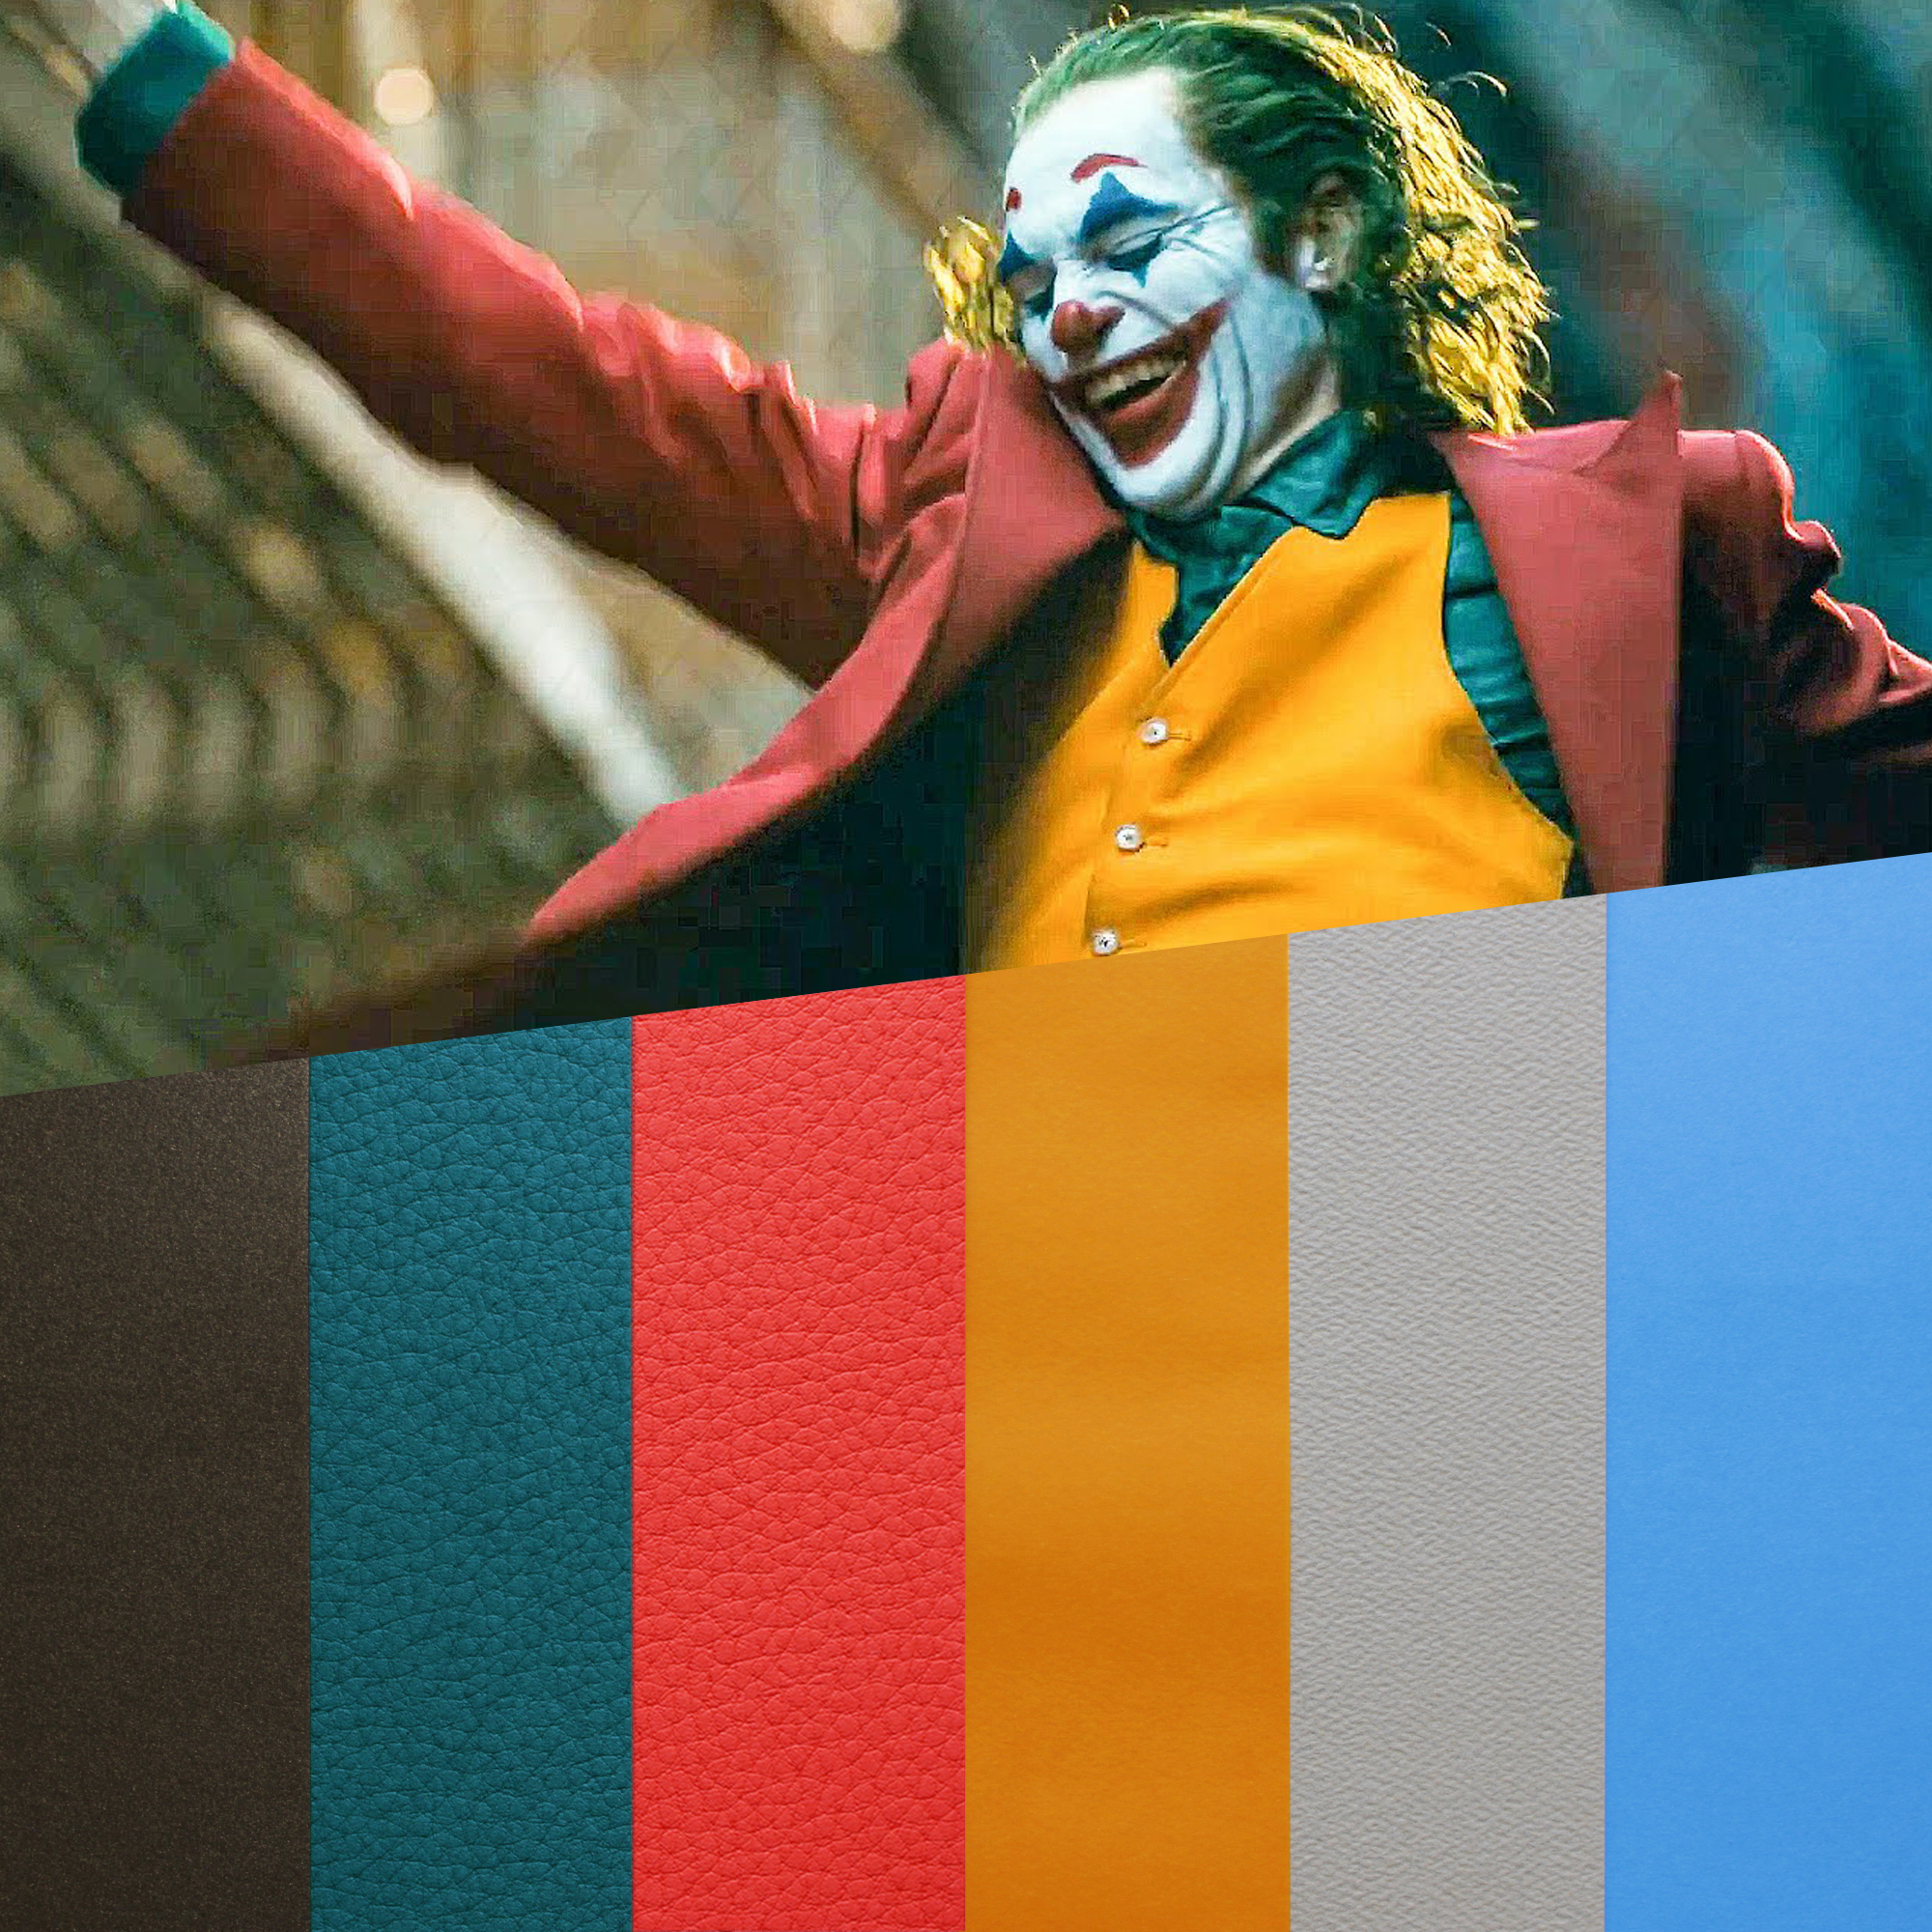 design papers collections inspired by an iconic movie scene- joker